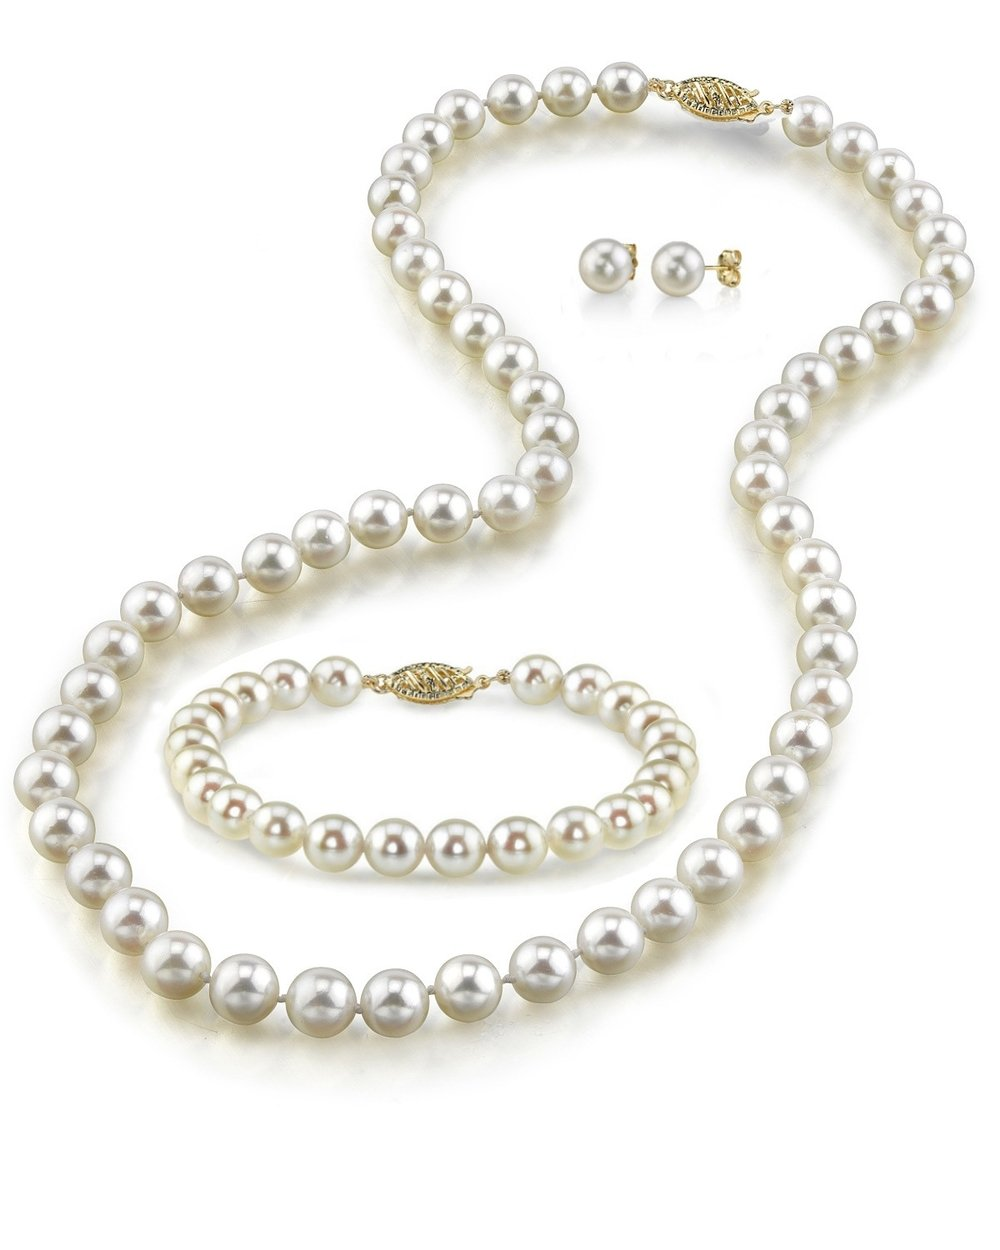 14K Gold White Freshwater Cultured Pearl Necklace, Bracelet & Earrings Set, 18'' - AAA Quality